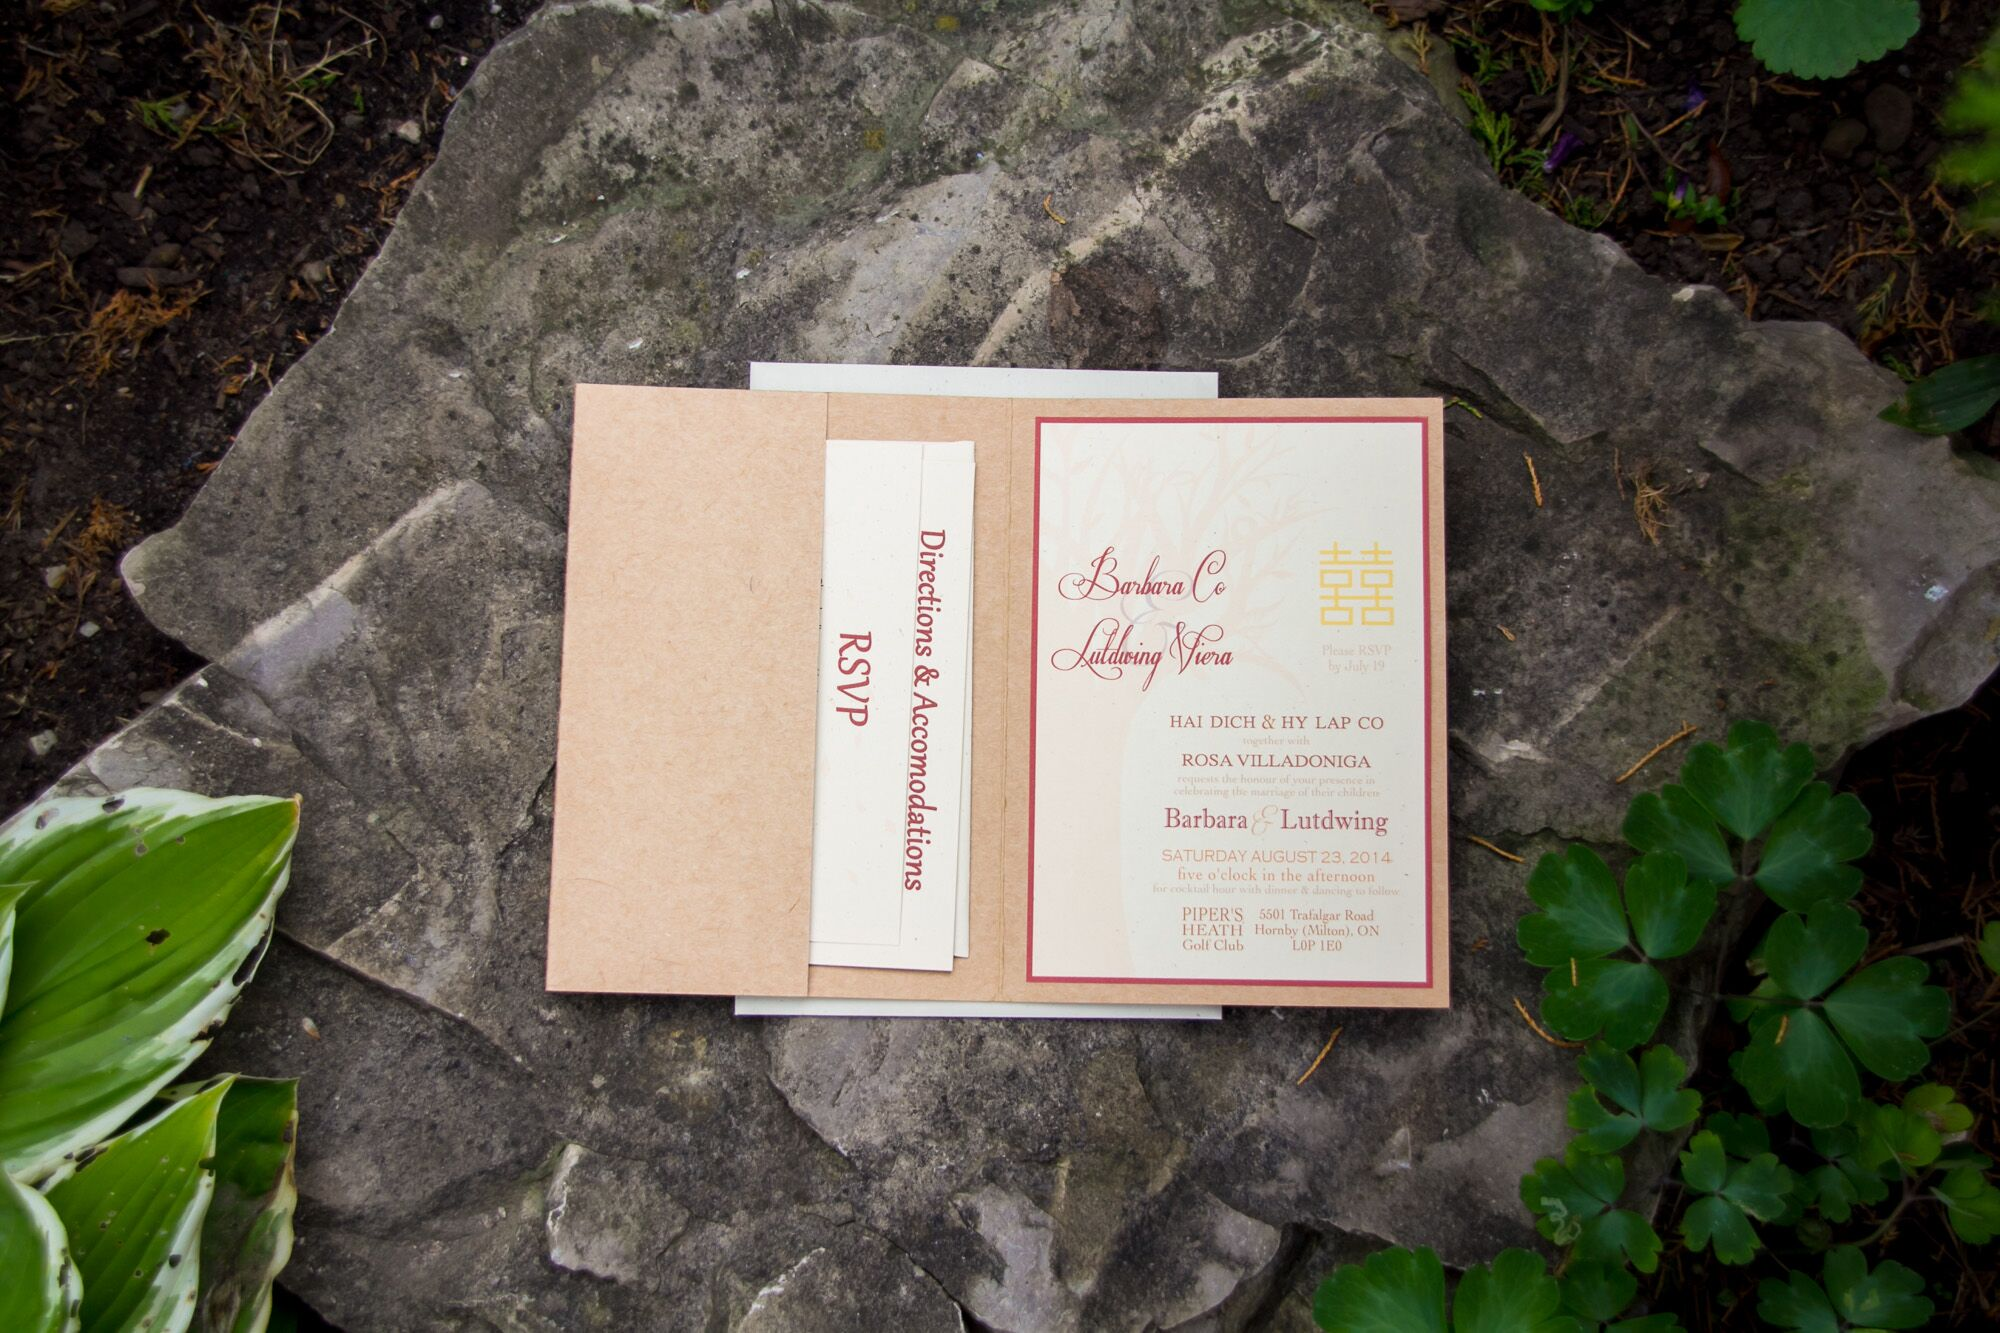 Wedding Invitations Recycled Paper: DIY Recycled Paper Wedding Invitations